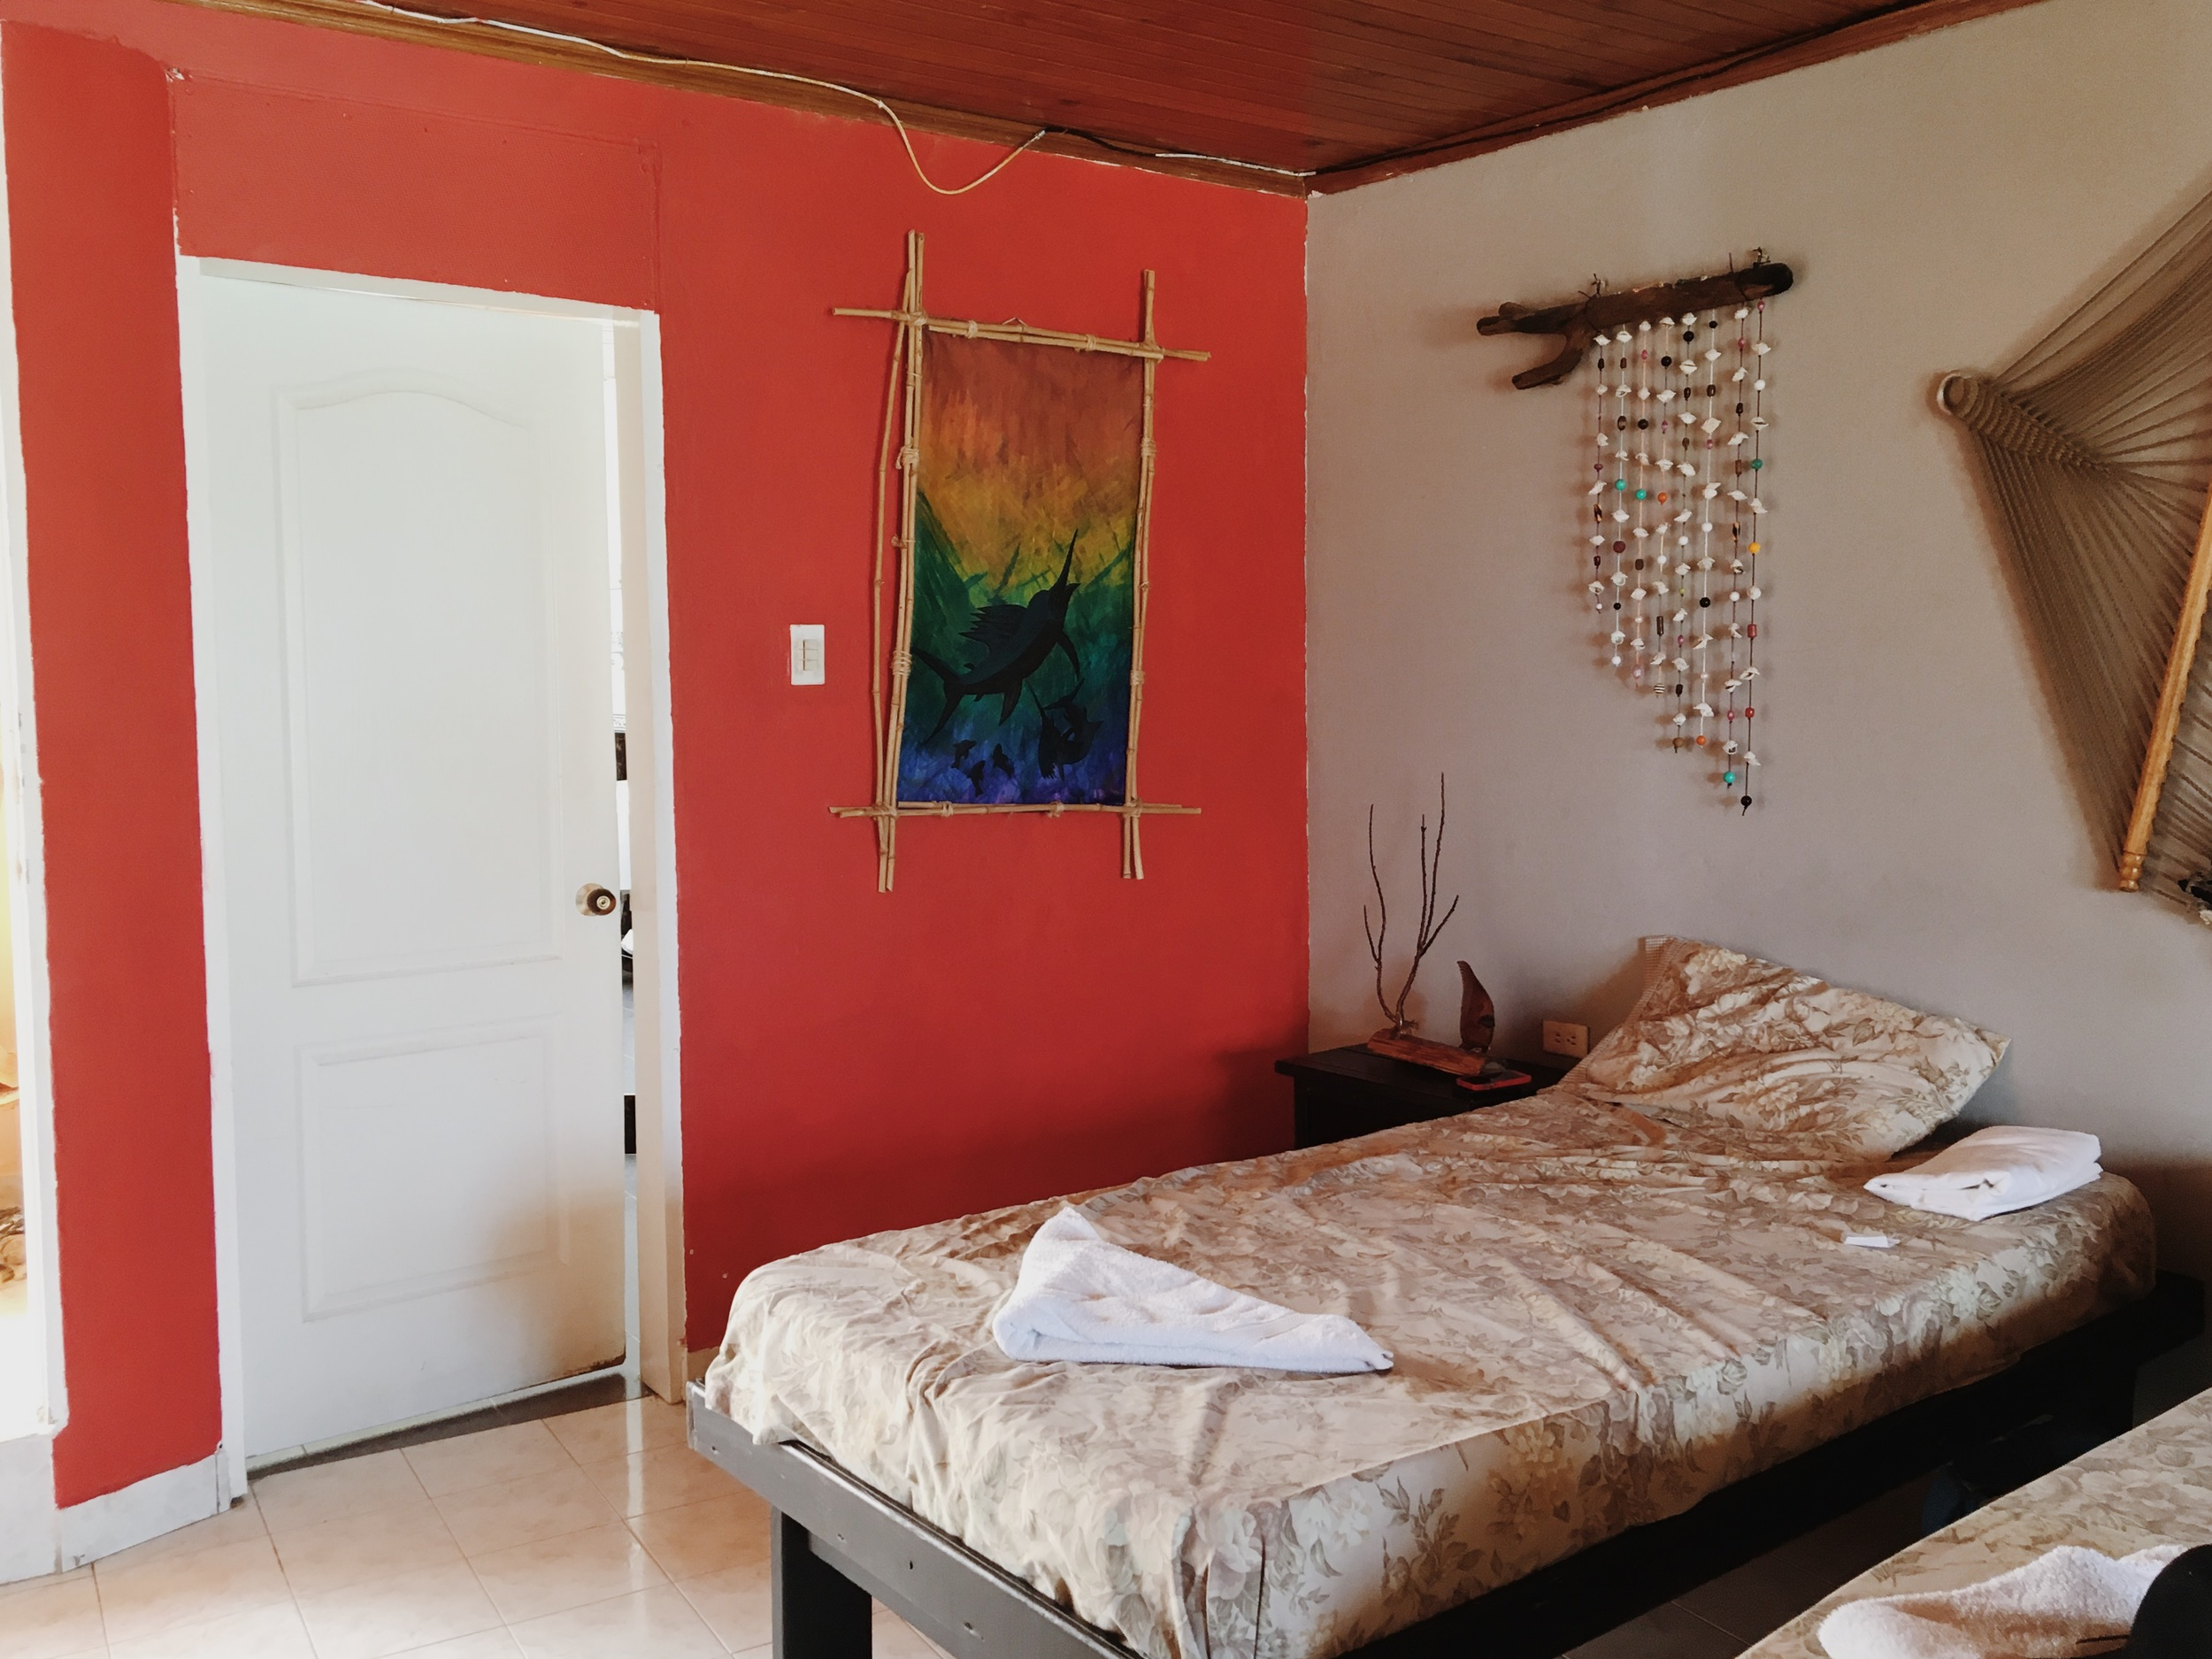 Love the red accent wall and decor in our room!